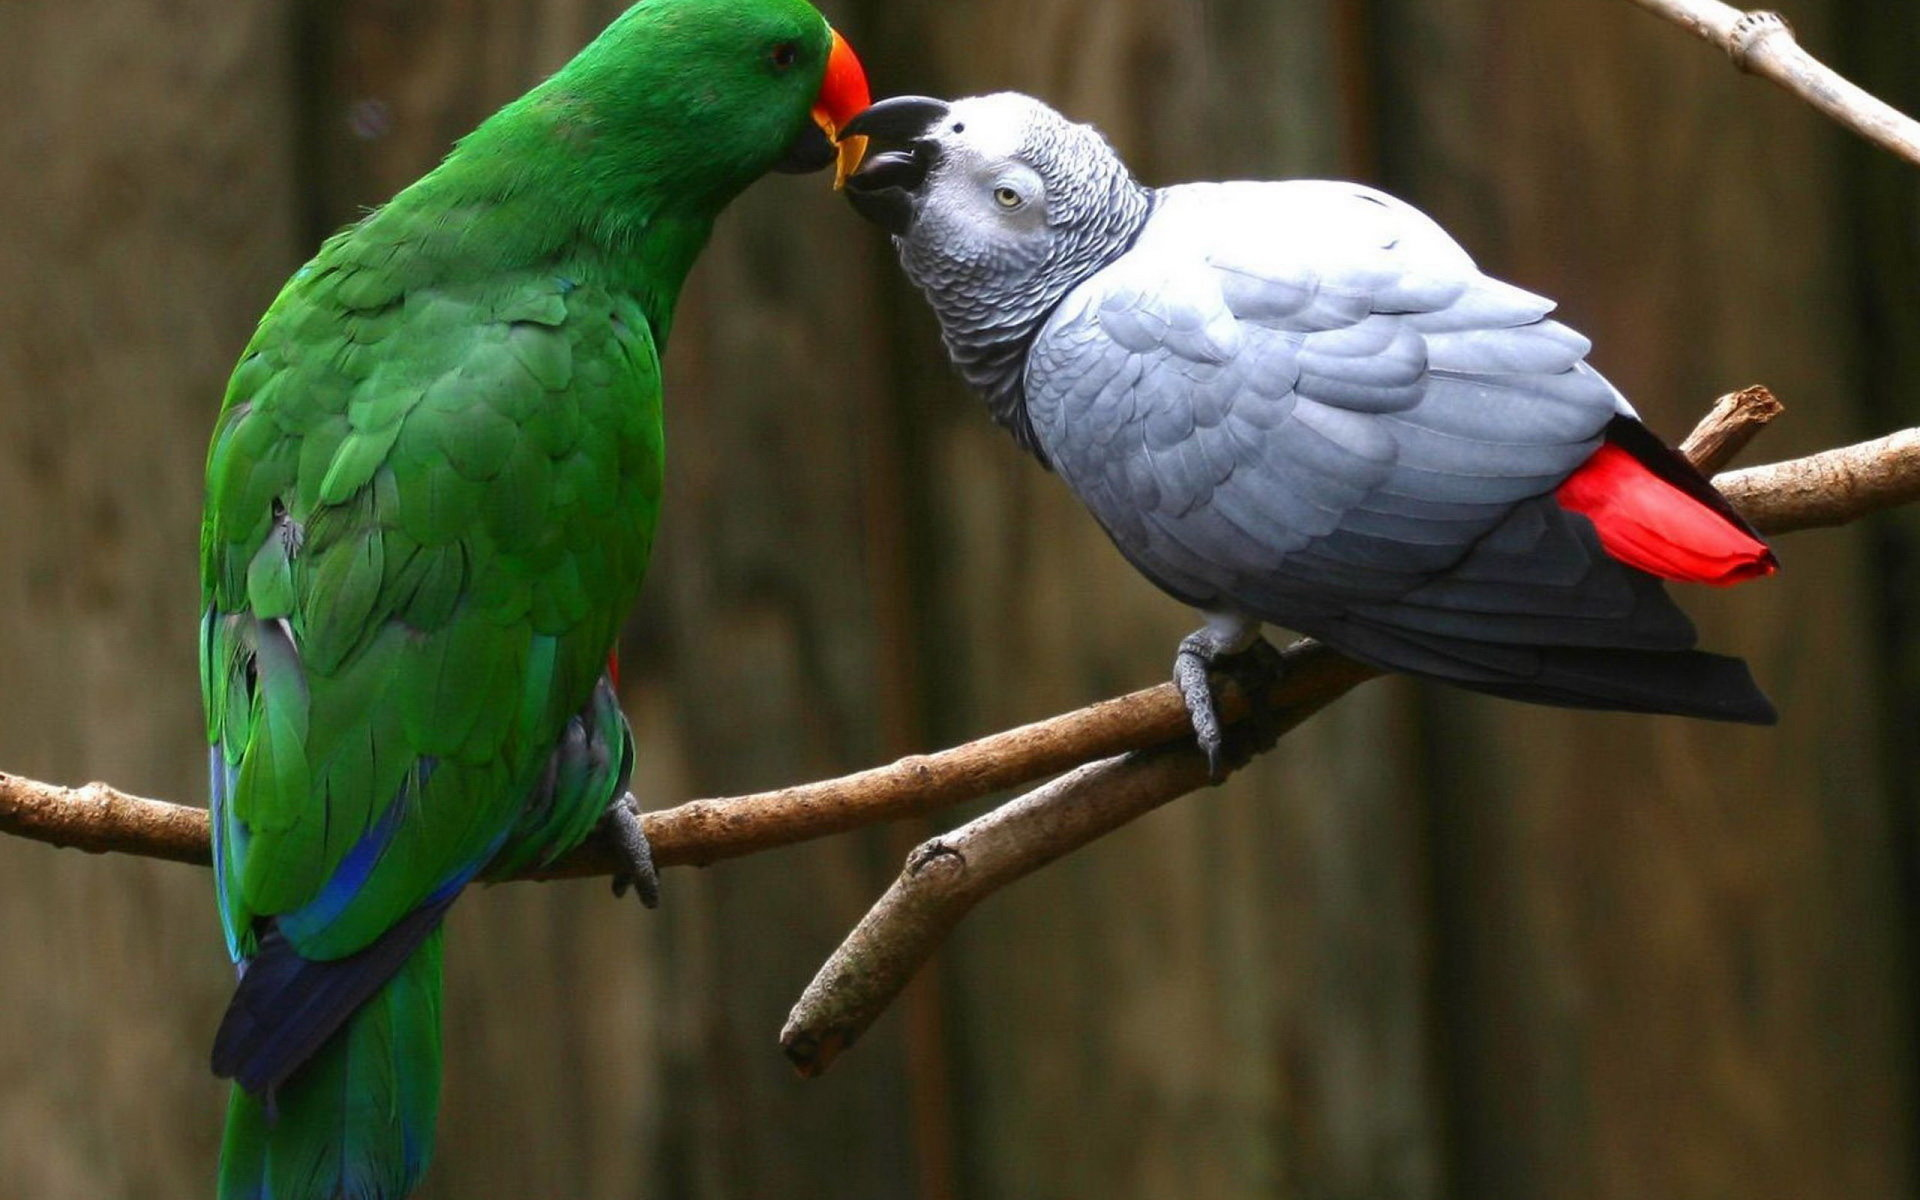 Download hd 1920x1200 Parrot PC wallpaper ID:25762 for free